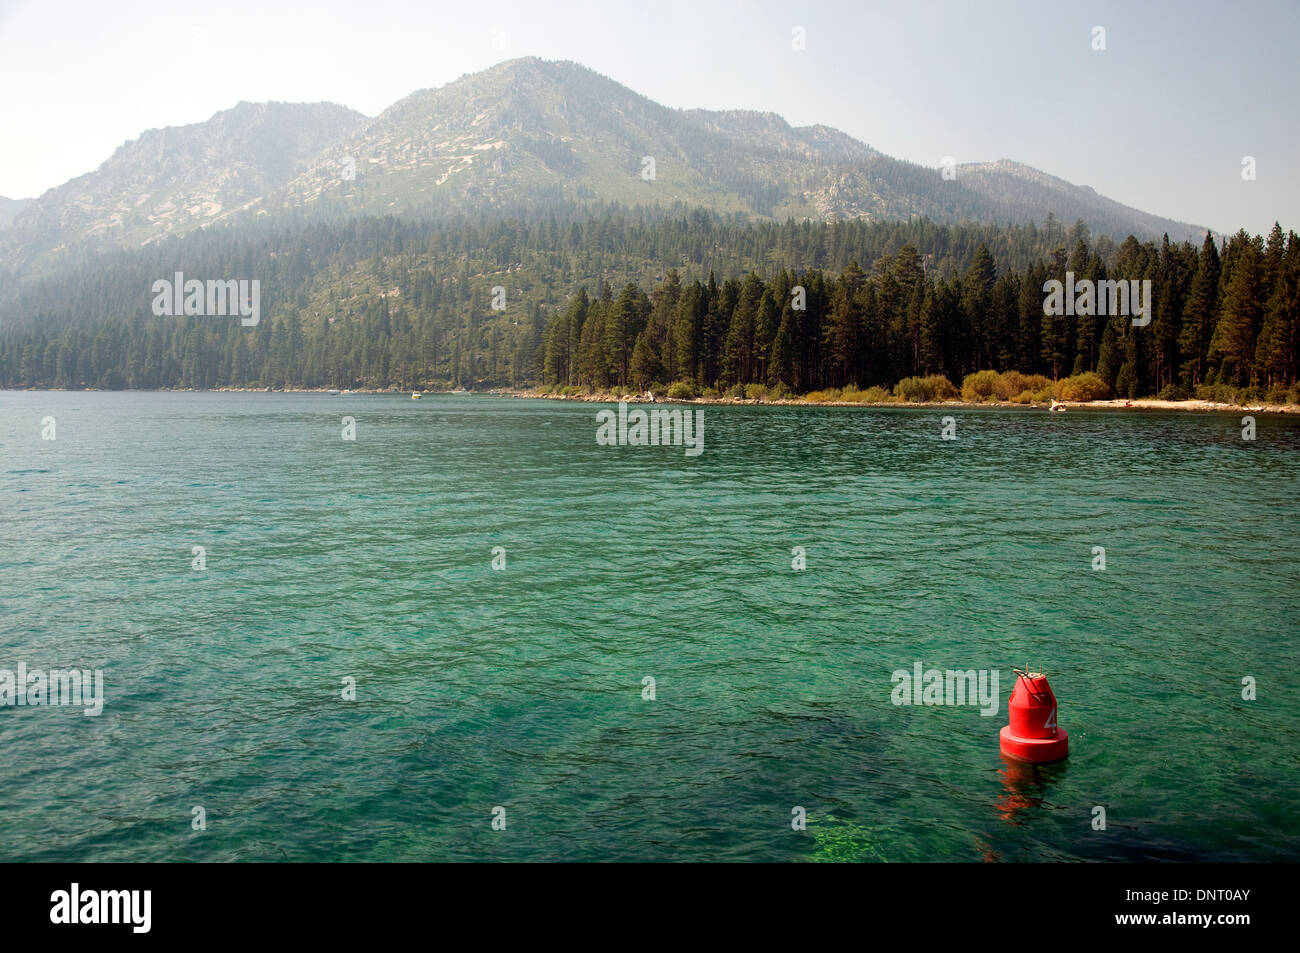 Emerald Bay, a shallow area in the south of crystal-clear Lake Tahoe, marked by a red buoy - Stock Image